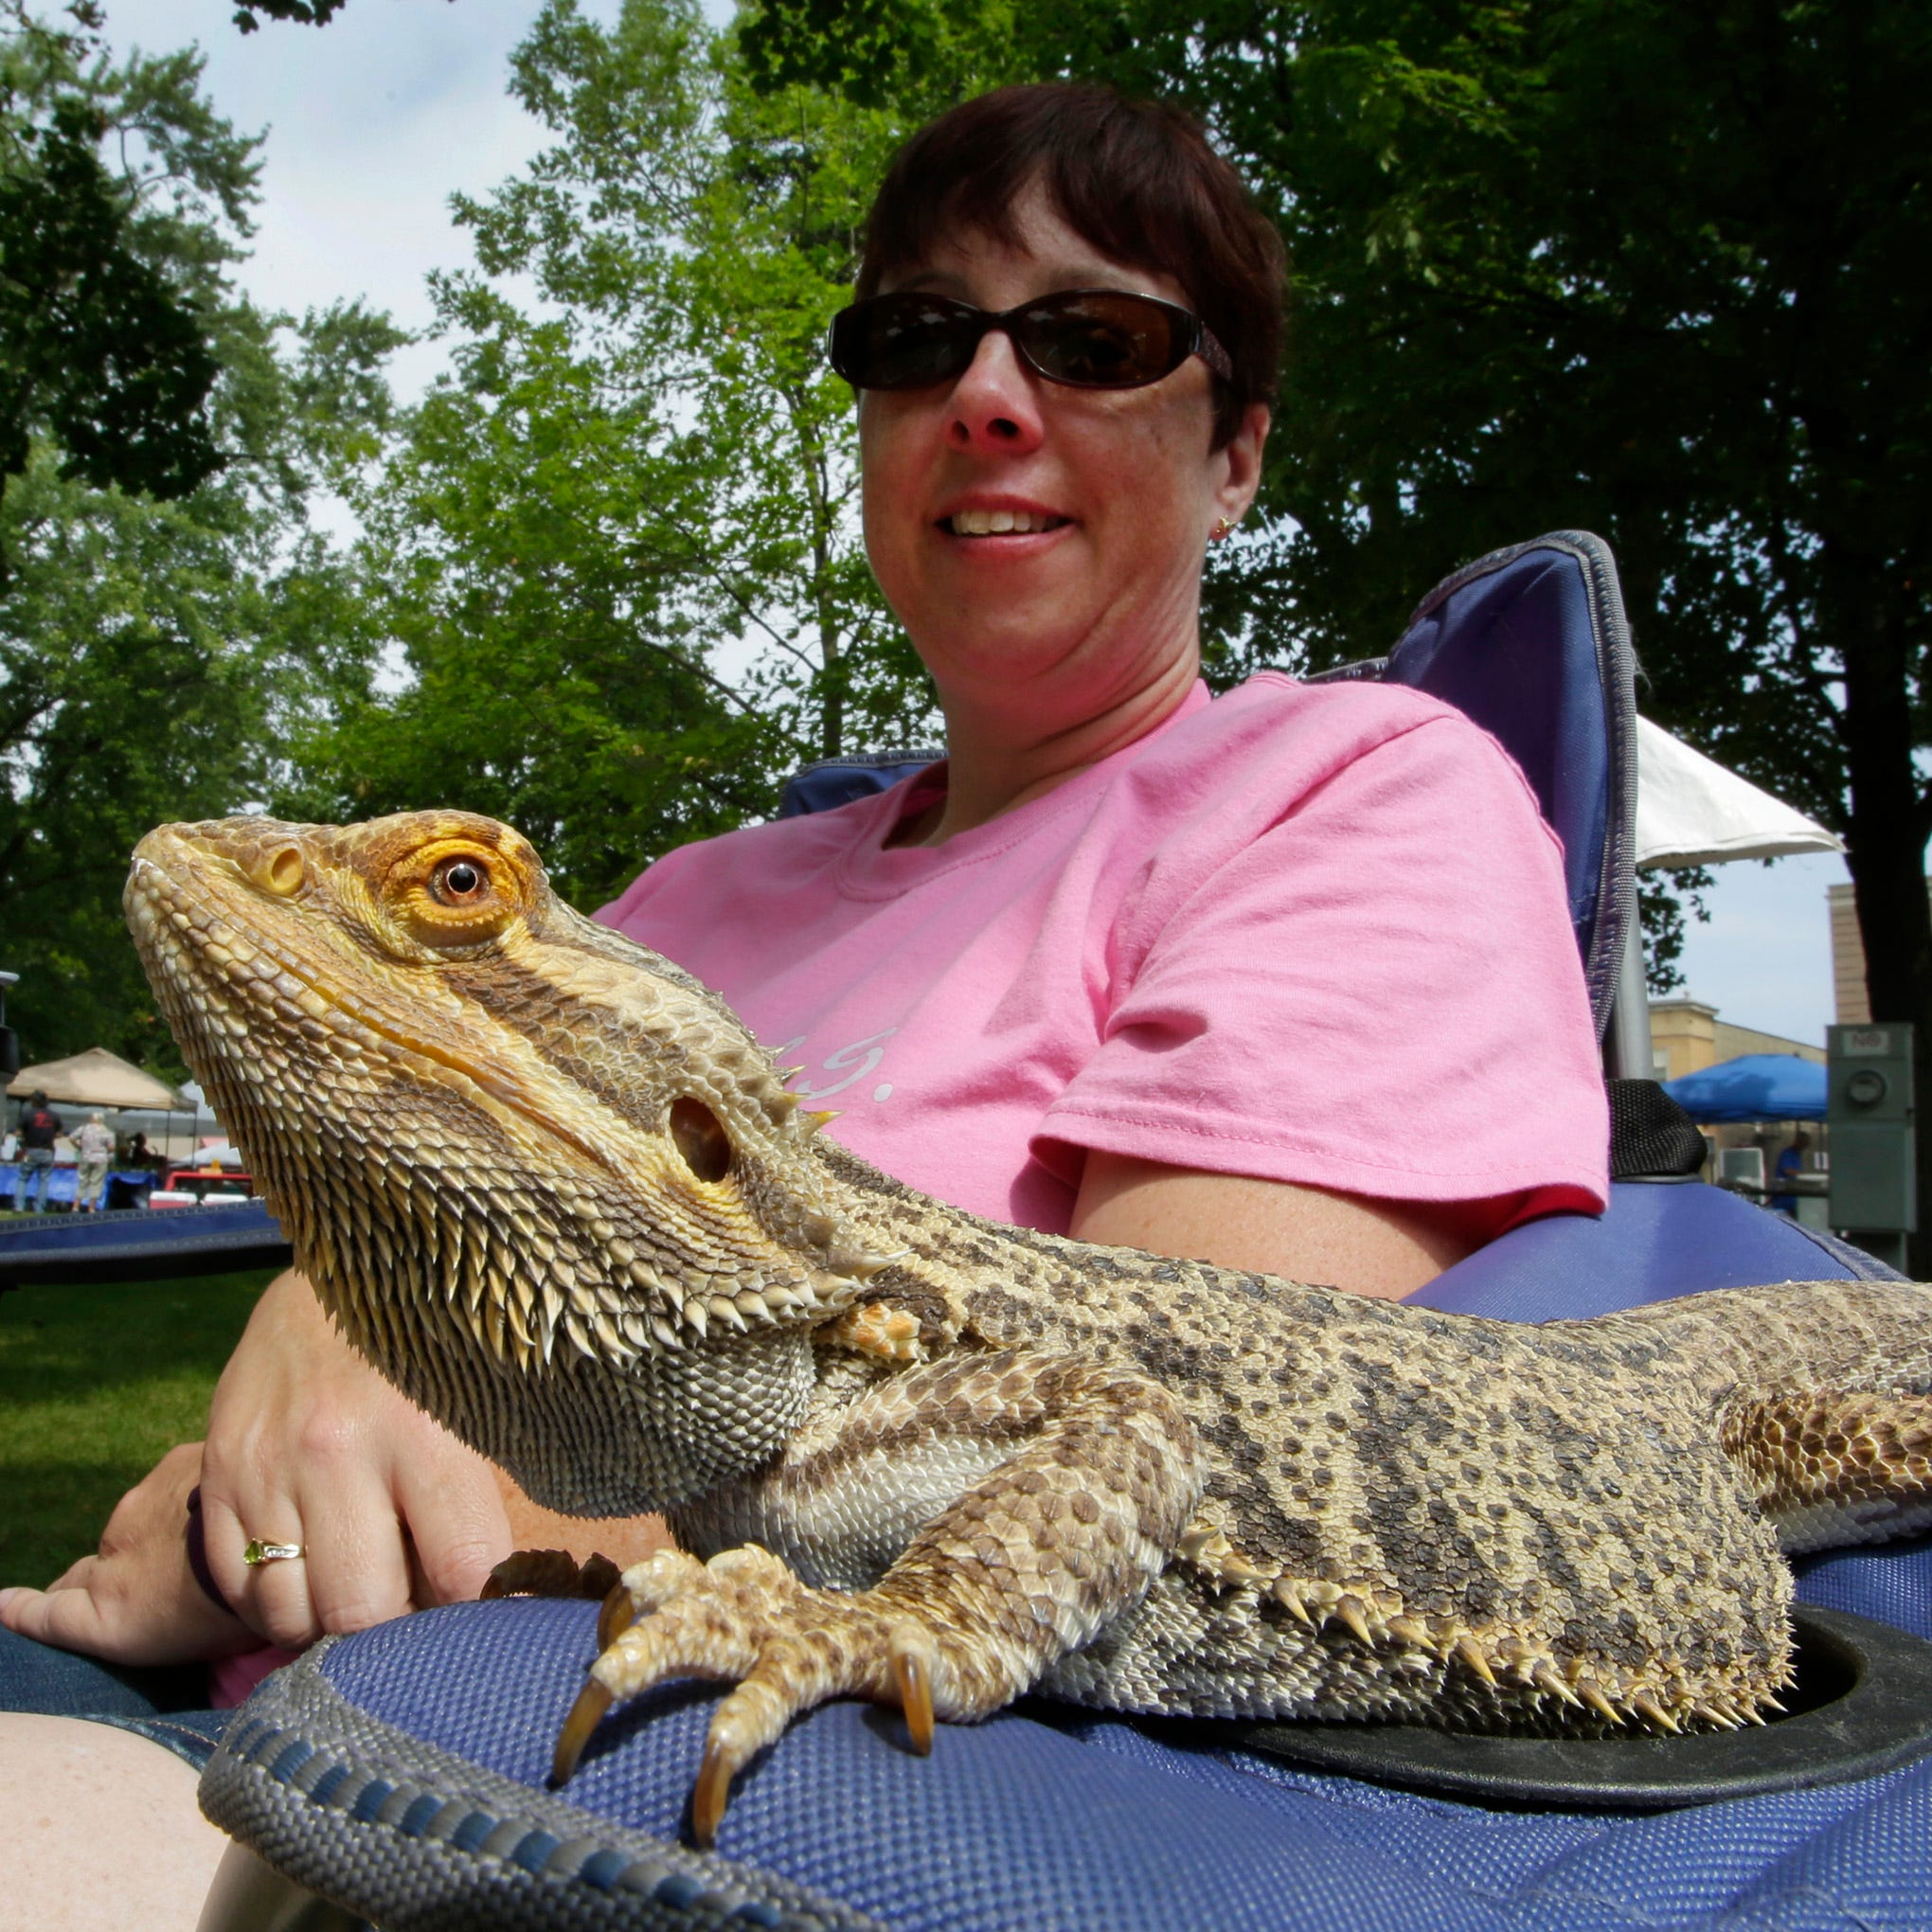 Sarah Goltry of Sheboygan, sits by a Bearded Dragon from the Lakeshore Avian and Reptile Rescue and Sanctuary group during the 27th annual Earthfest, Saturday, August 18, 2018, at Fountain Park in Sheboygan, Wis.